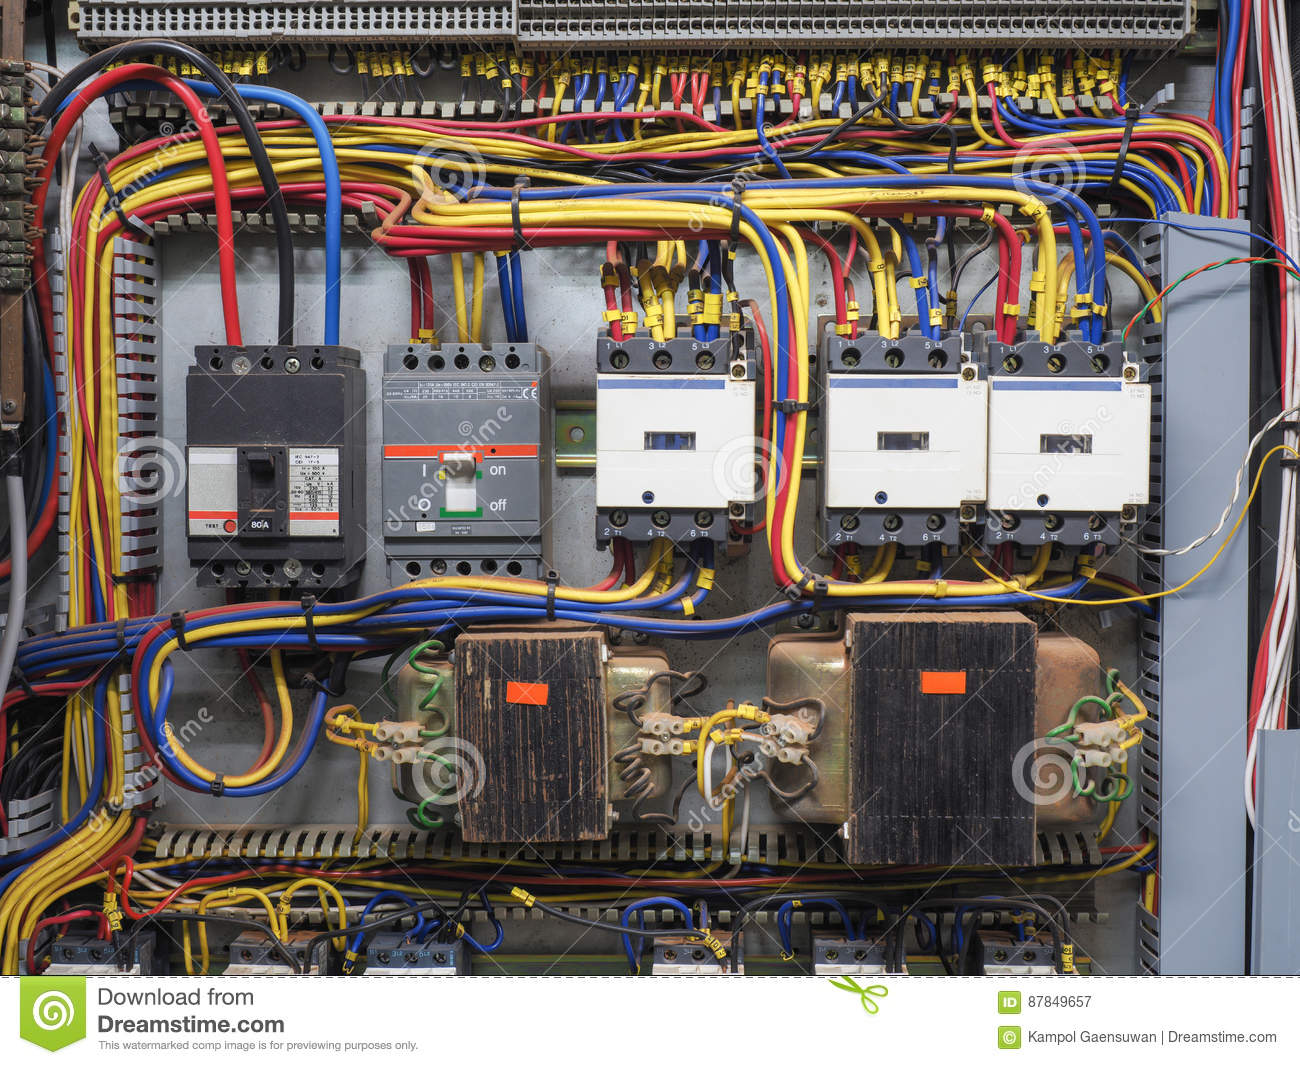 Red Wire Electrical Panel Wiring Data Schema 220 Diagram Front Shot Of Electric That Shows Blue Yellow Black Rh Dreamstime Com An Service